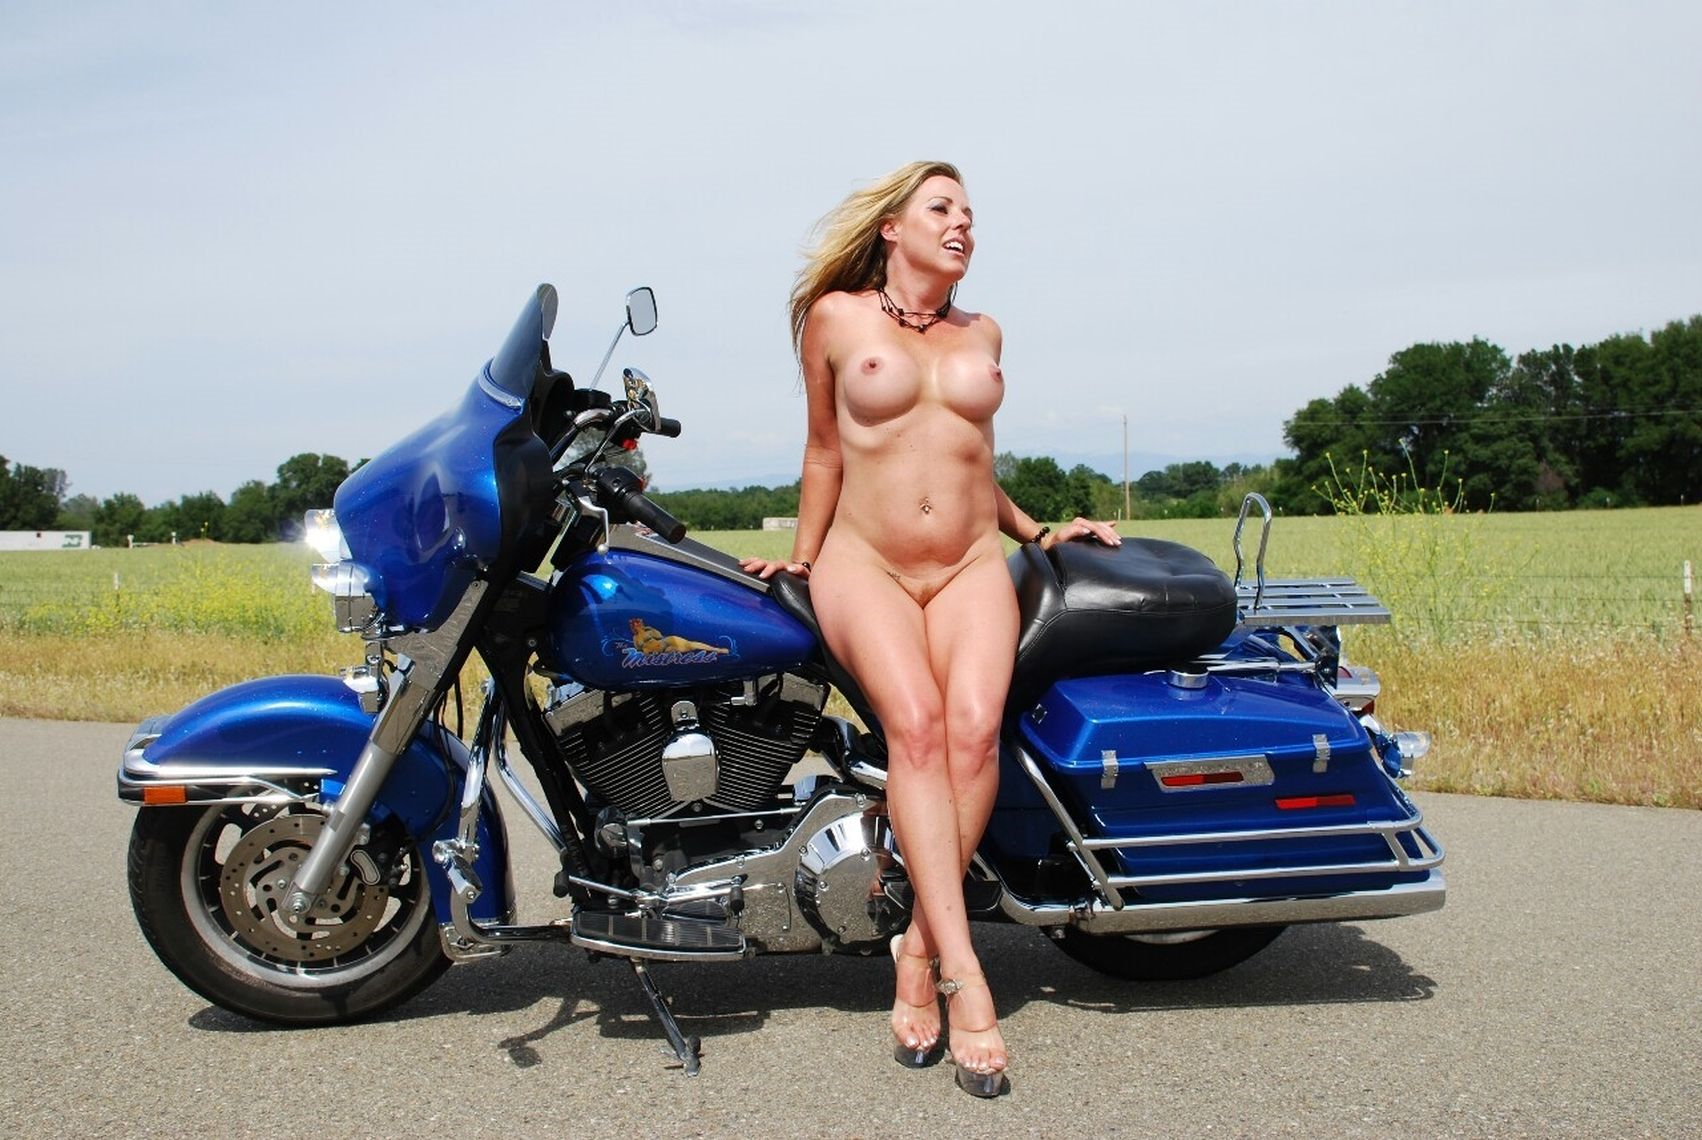 Free naked bikers pics